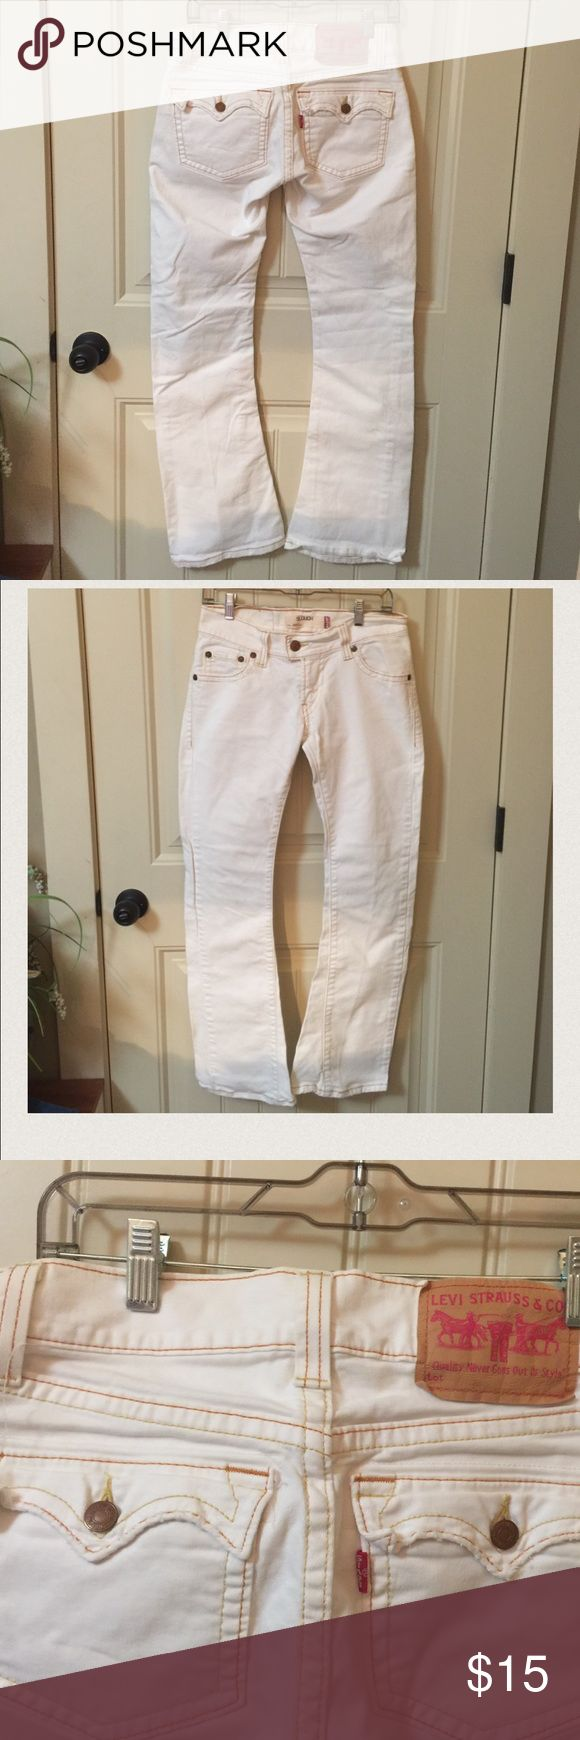 "Levi's 504 White Slouch jeans size 5 Excellent to like new condition. Size 5 M Levis 504 Slouch jeans. Measures approx 31"" inseam and 15-15.5"" straight across waist. Hard to find! 98% Cotton and 2% spandex. Quality Never Goes Out of Style. Creamy ivory Levi's Jeans"